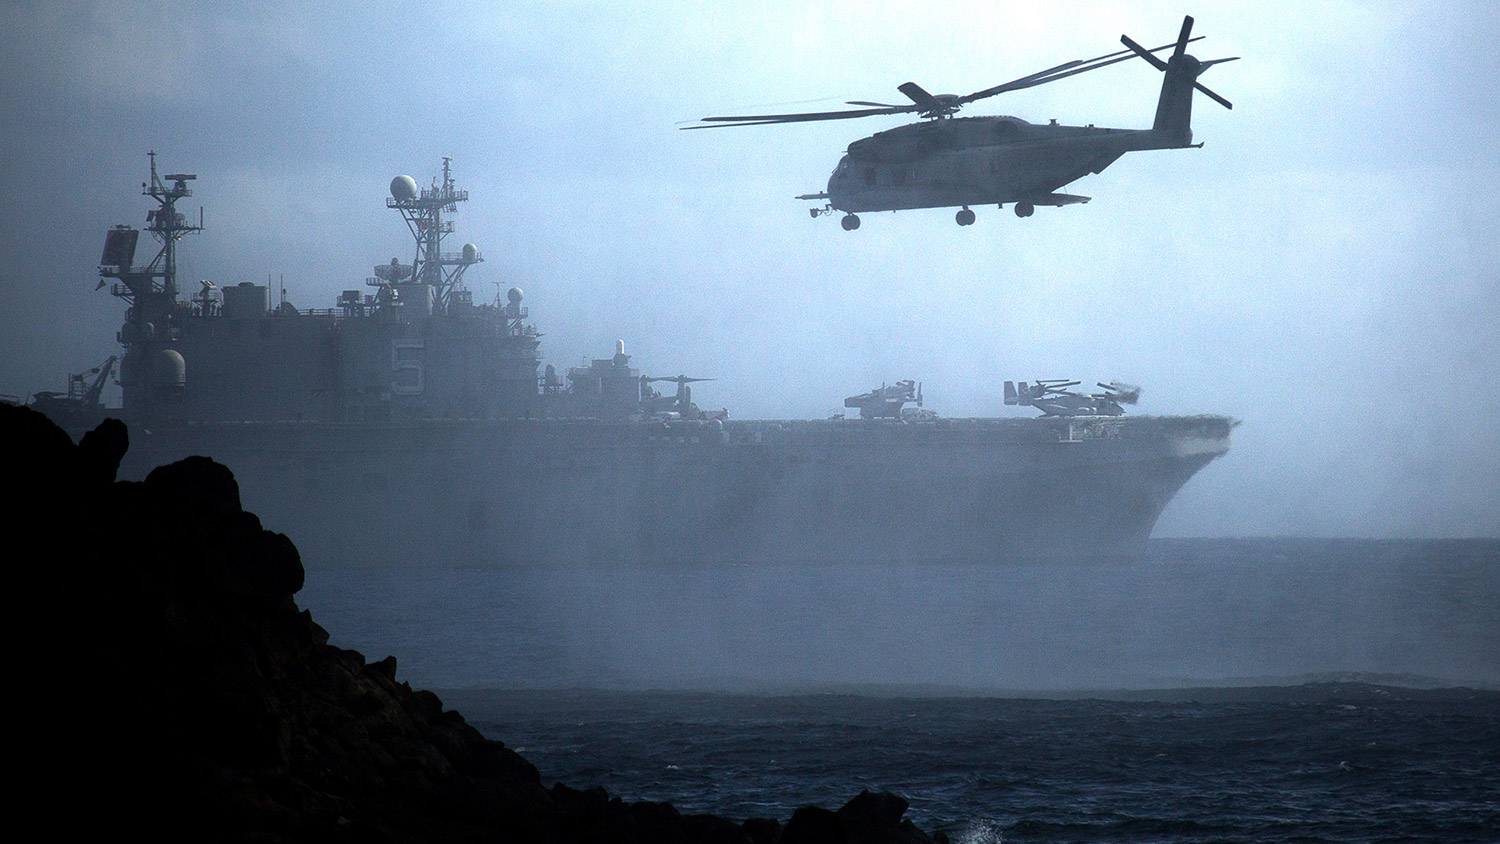 A CH-53E Super Stallion helicopter flies ahead of the amphibious assault ship USS Peleliu (LHA-5) after conducting helocast operations at Pyramid Rock Beach, Marine Corps Base Hawaii.